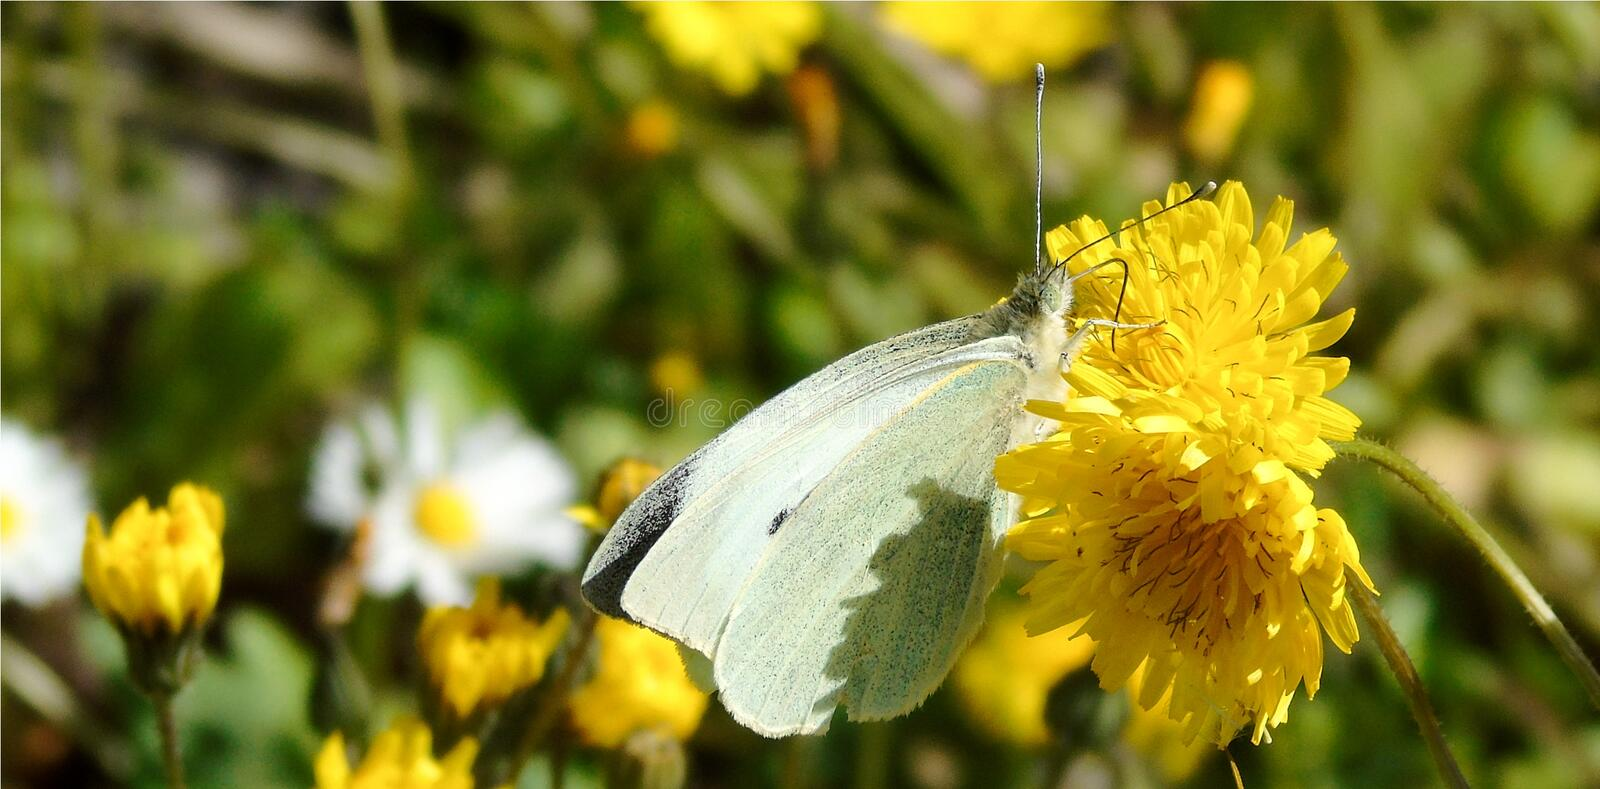 Wallpaper with closeup of white butterfly on yellow flower illuminated on green flowery meadow background stock photo